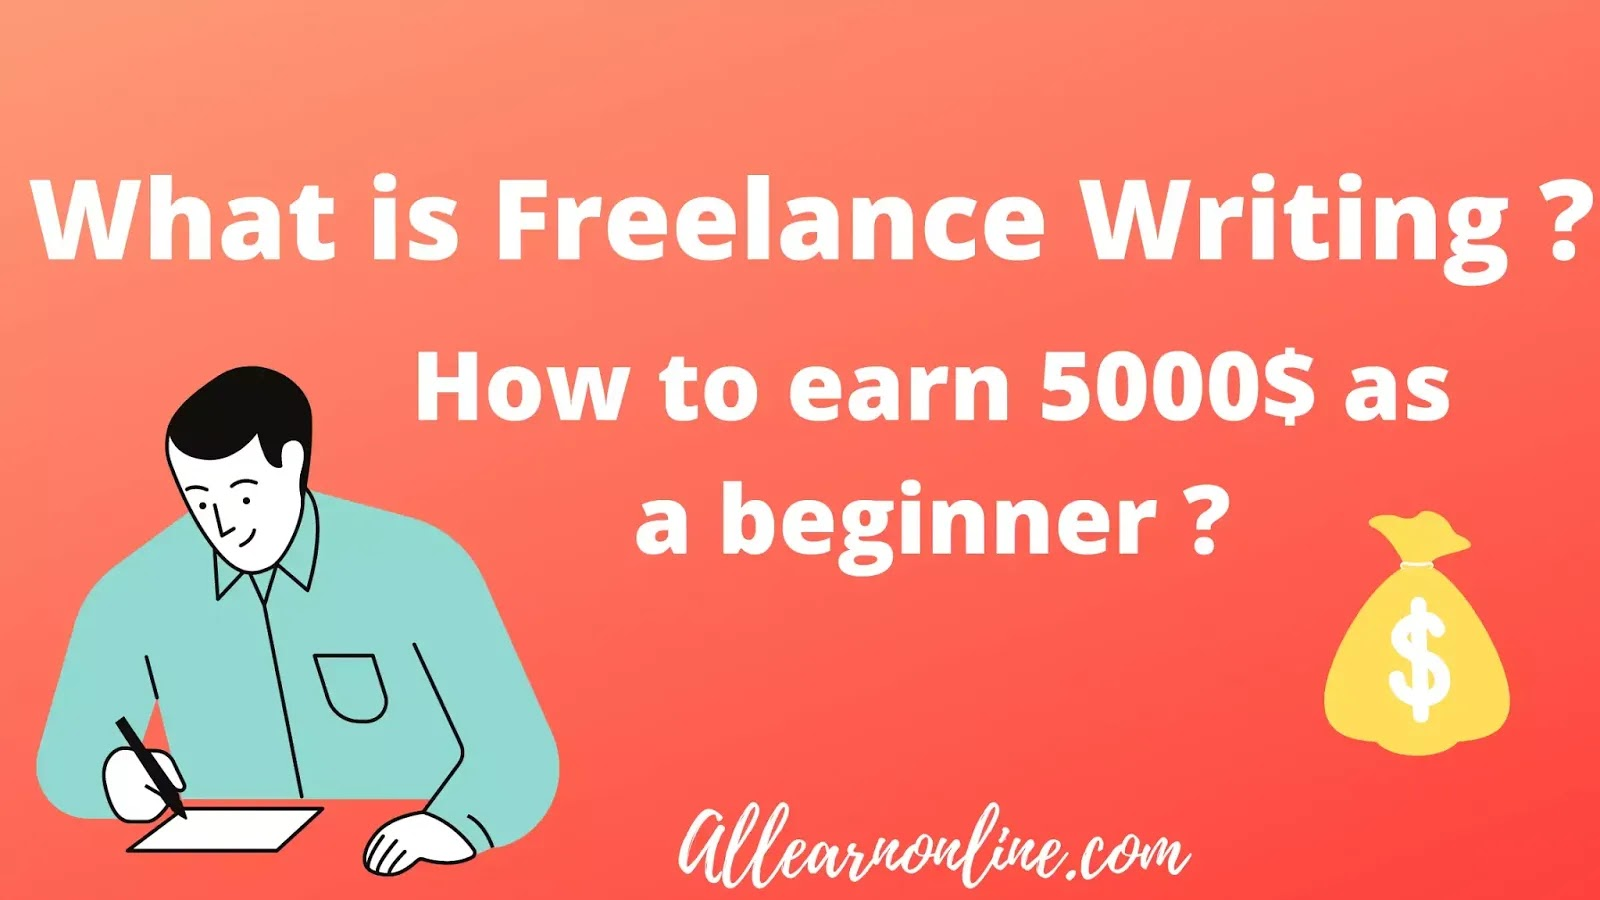 What is freelance writing and how to earn 5000$ as a beginner ?